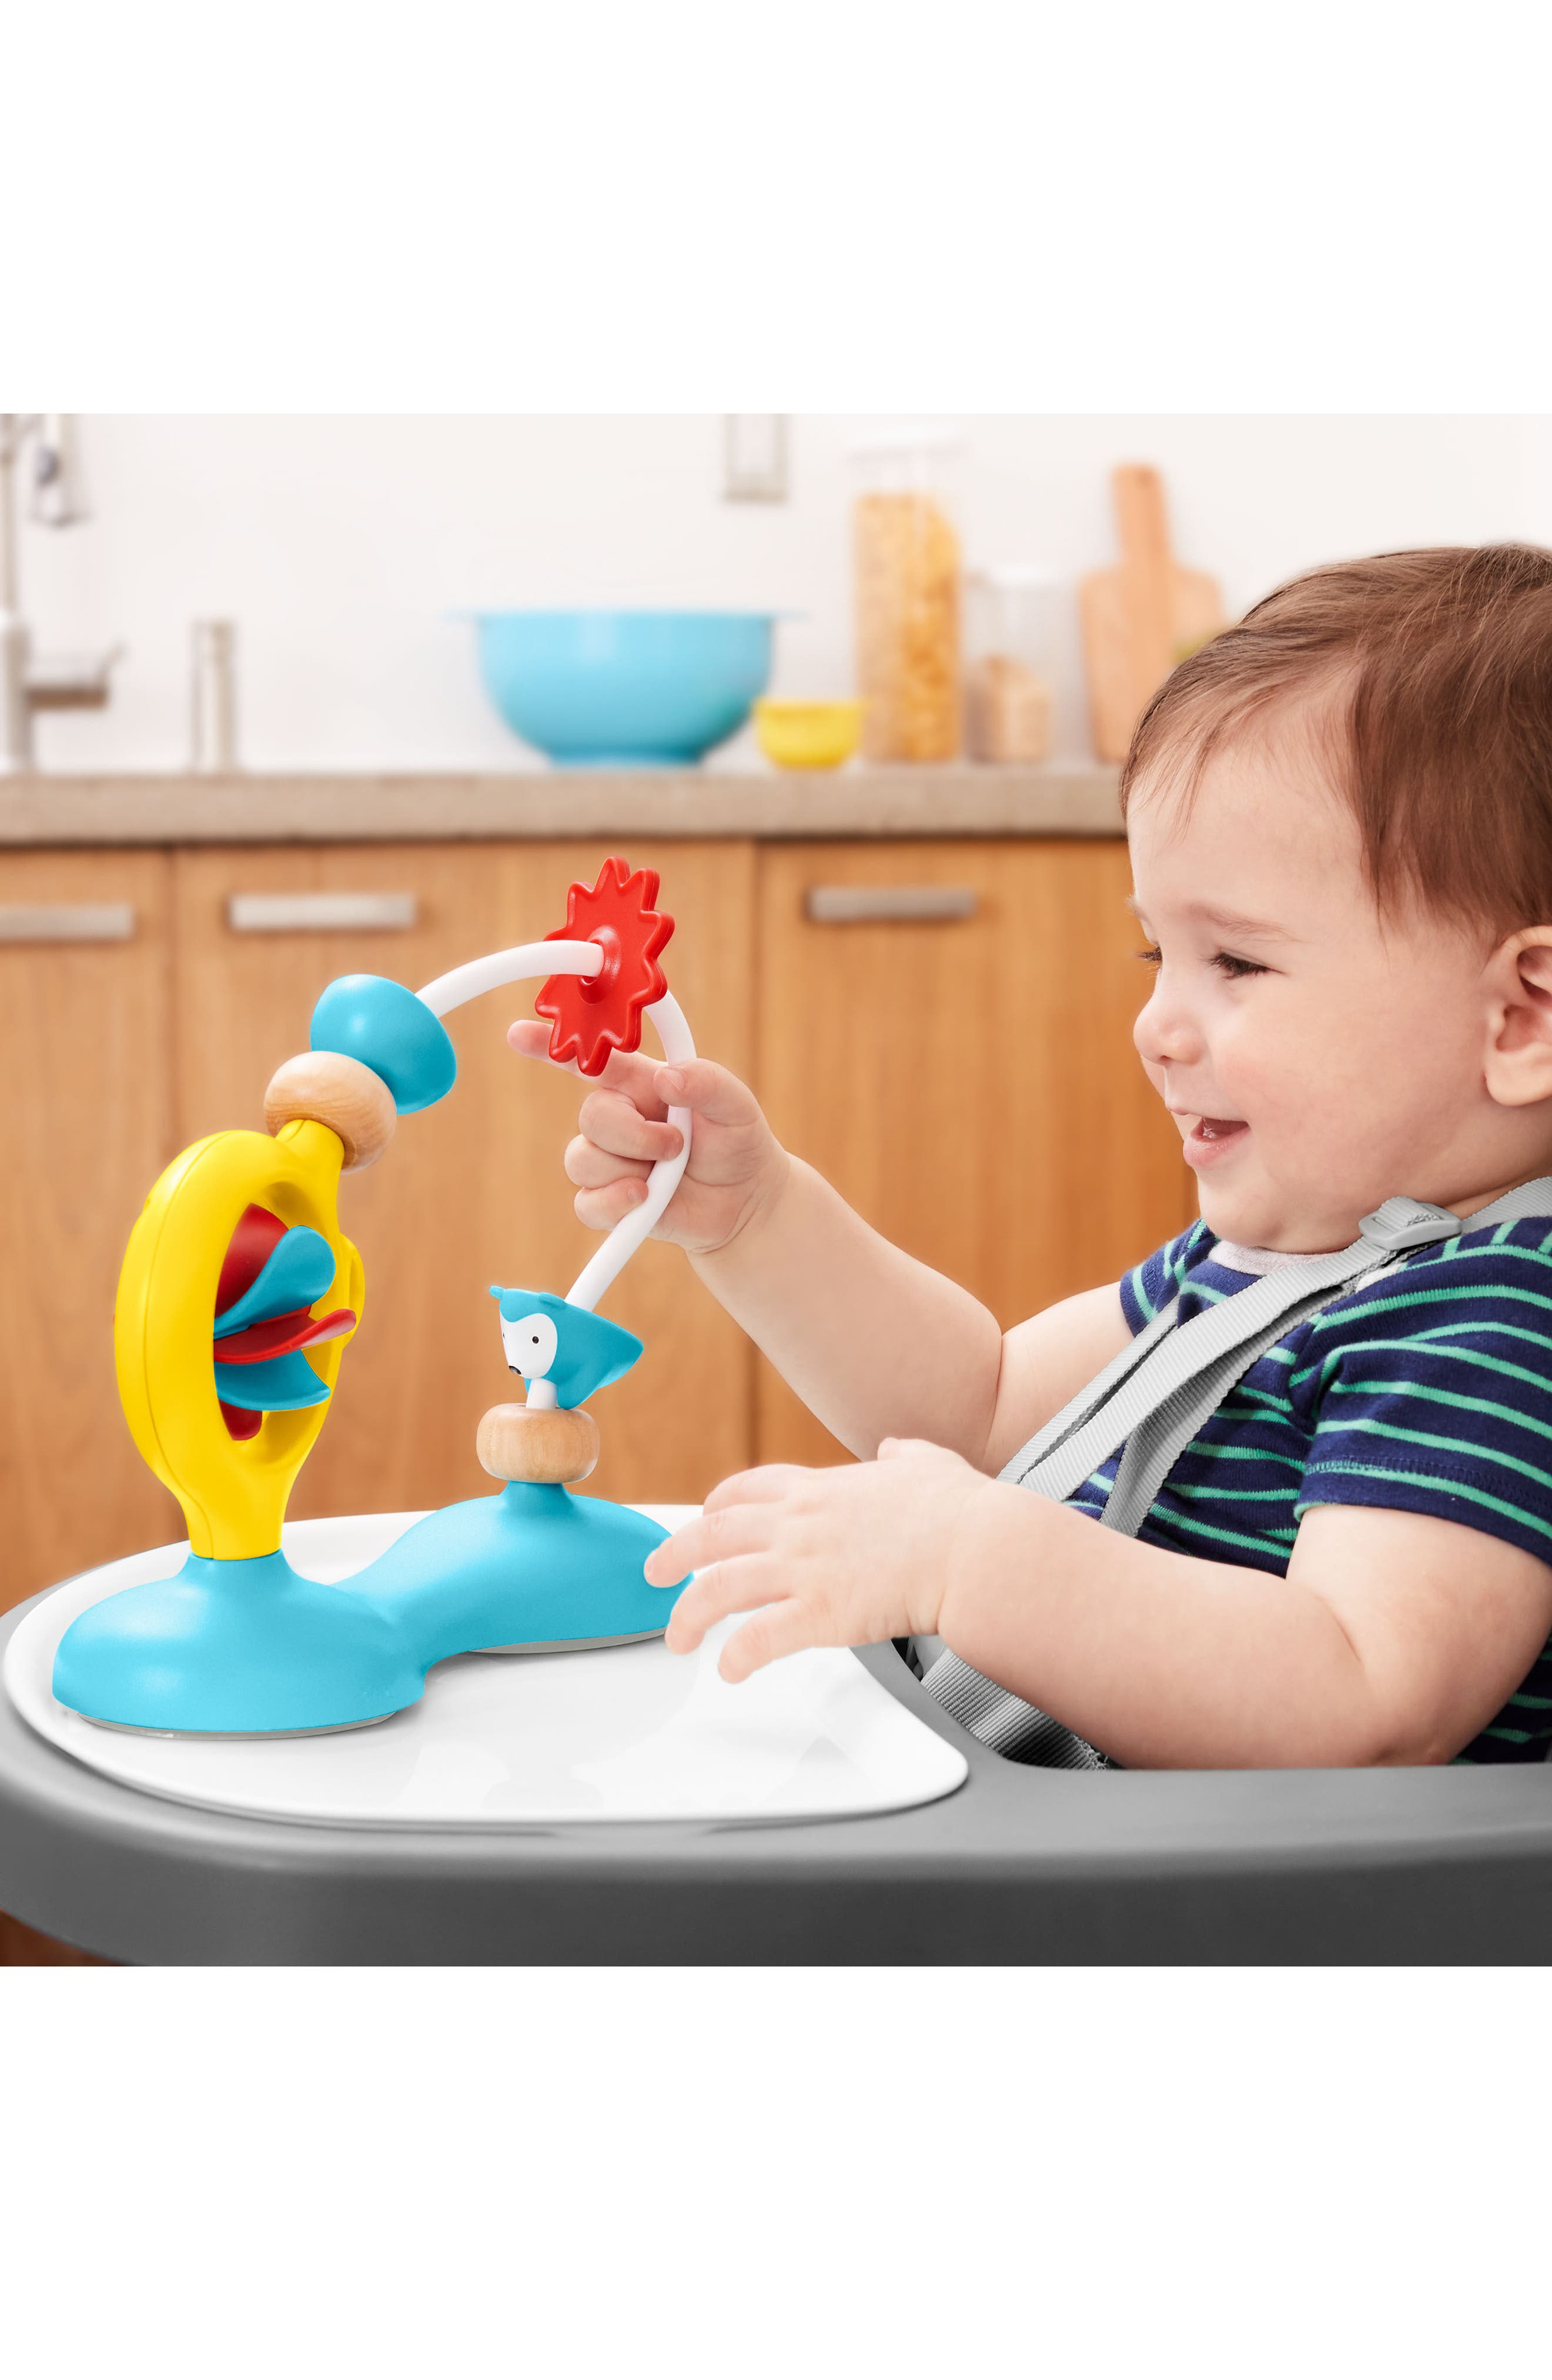 Explore N More Bead Mover Highchair Toy,                             Alternate thumbnail 4, color,                             400